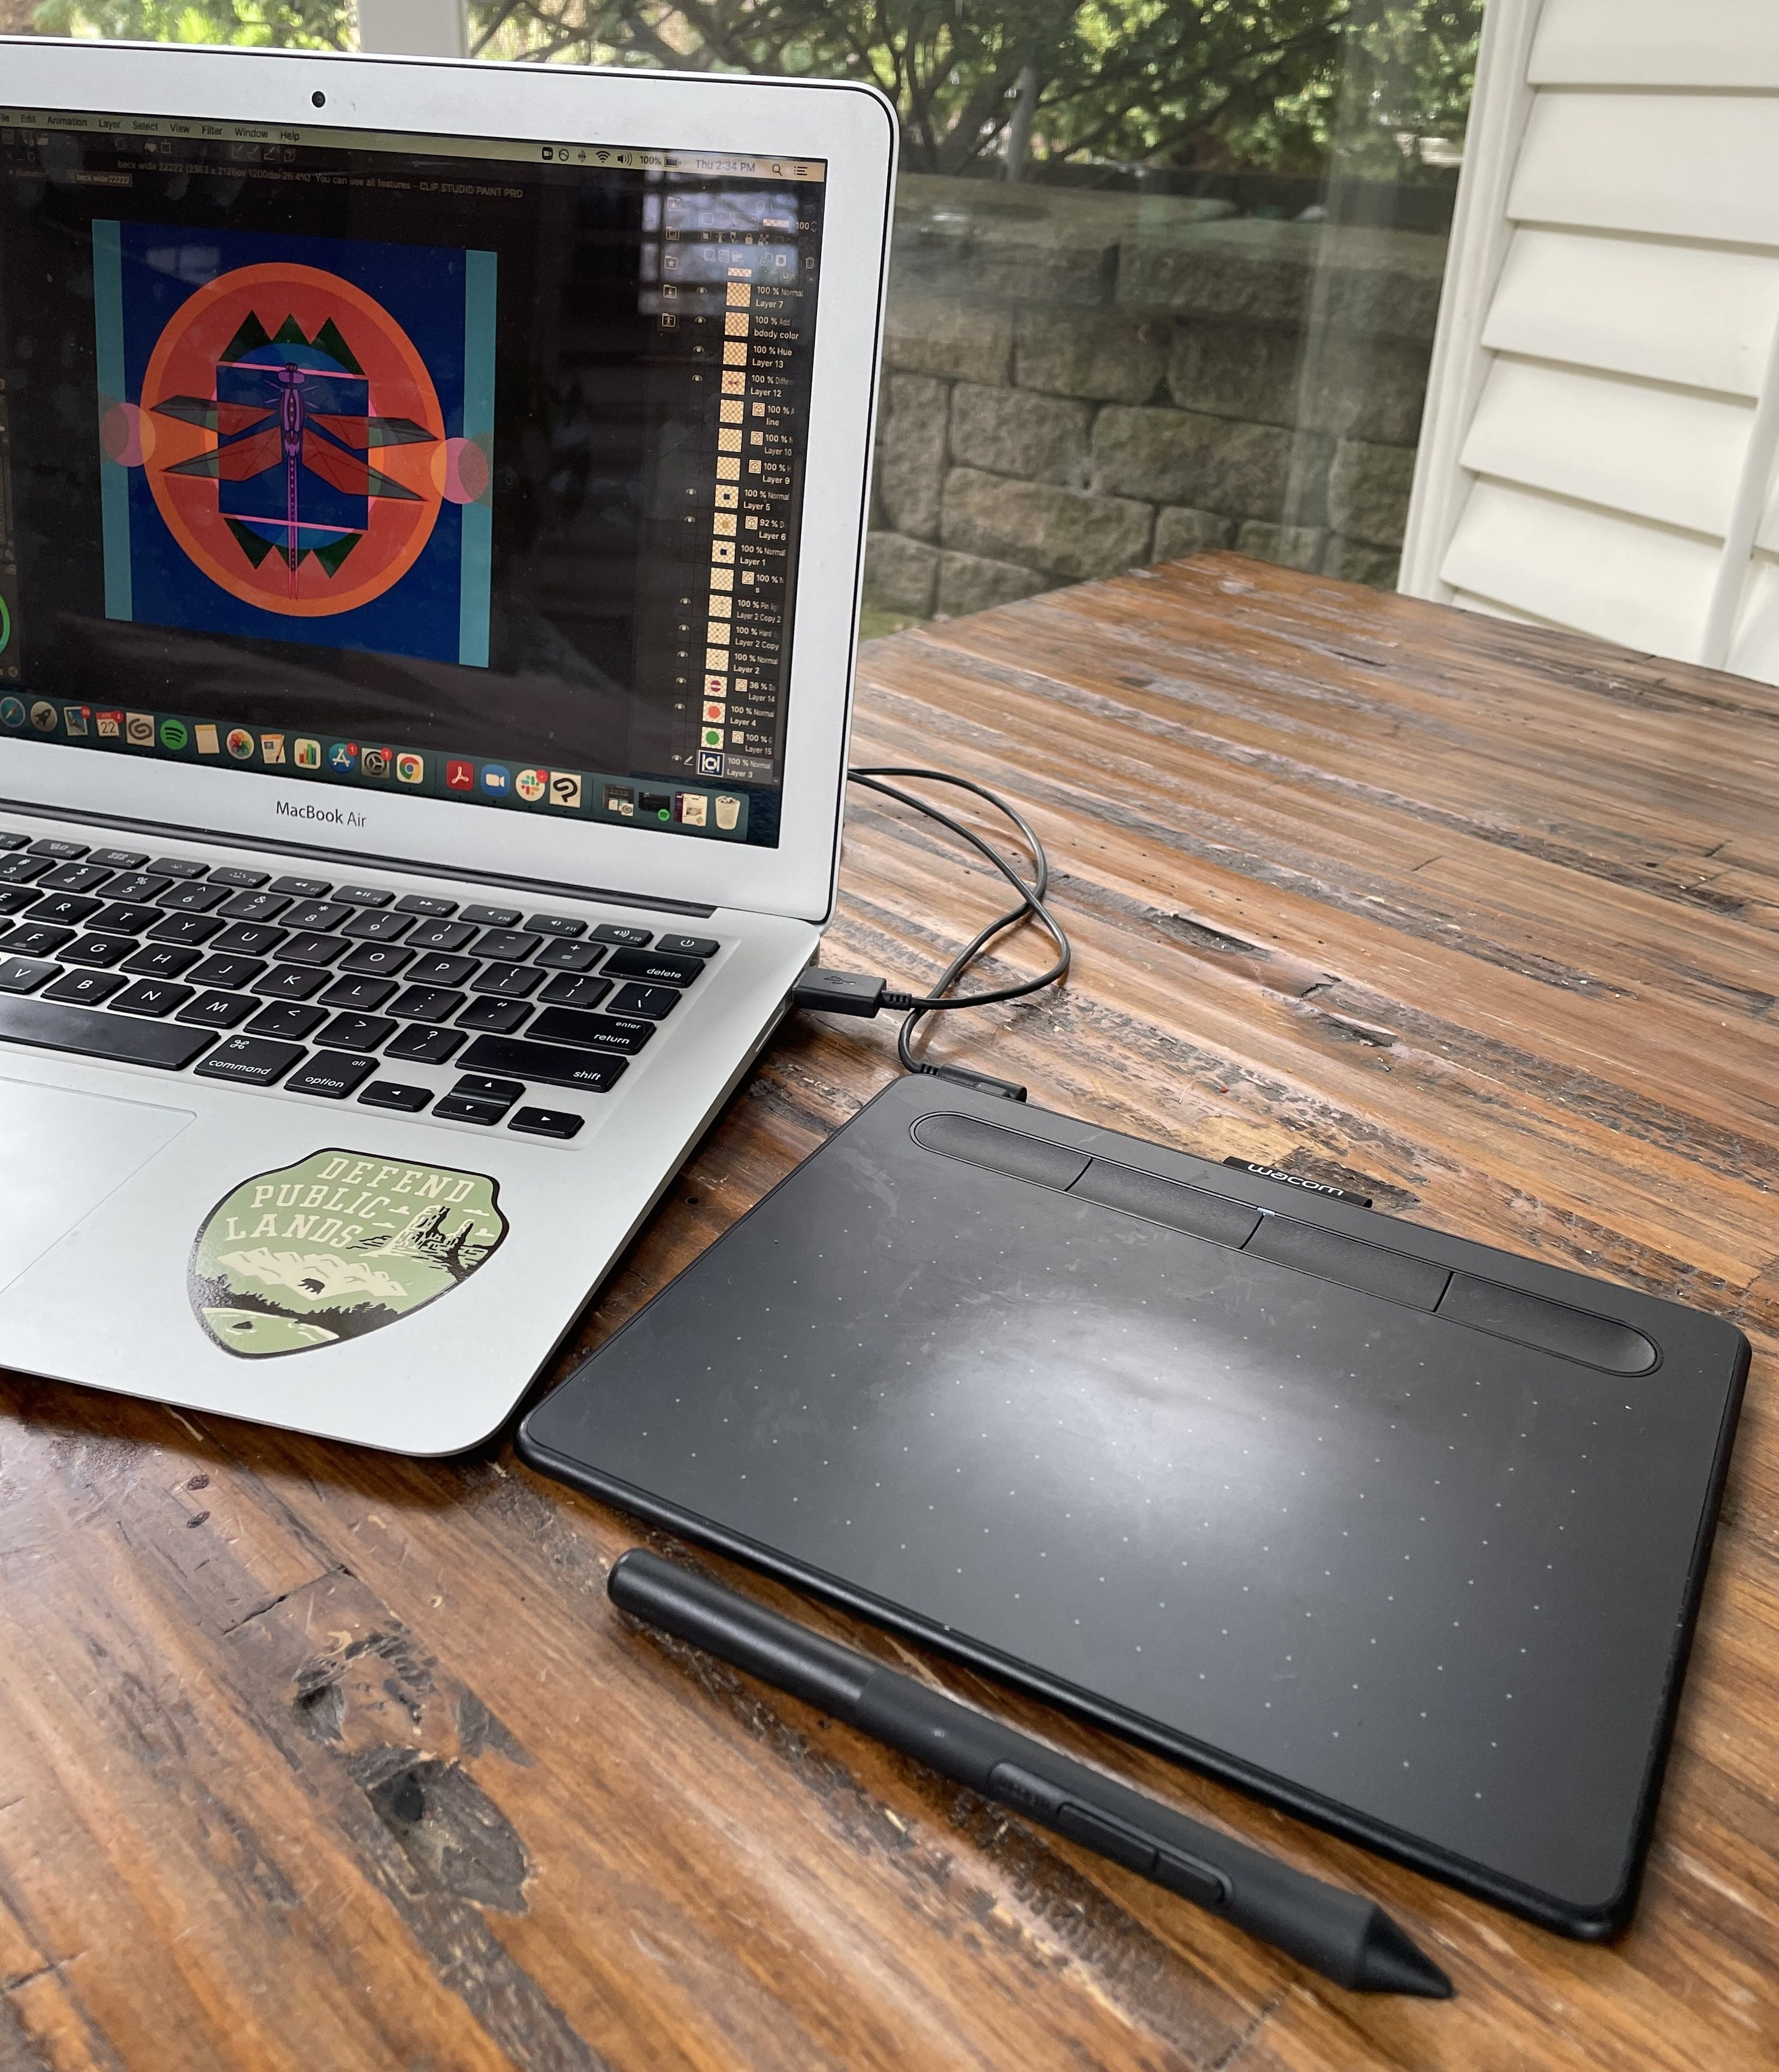 The wacom drawing tablet and stylus plugged into a laptop